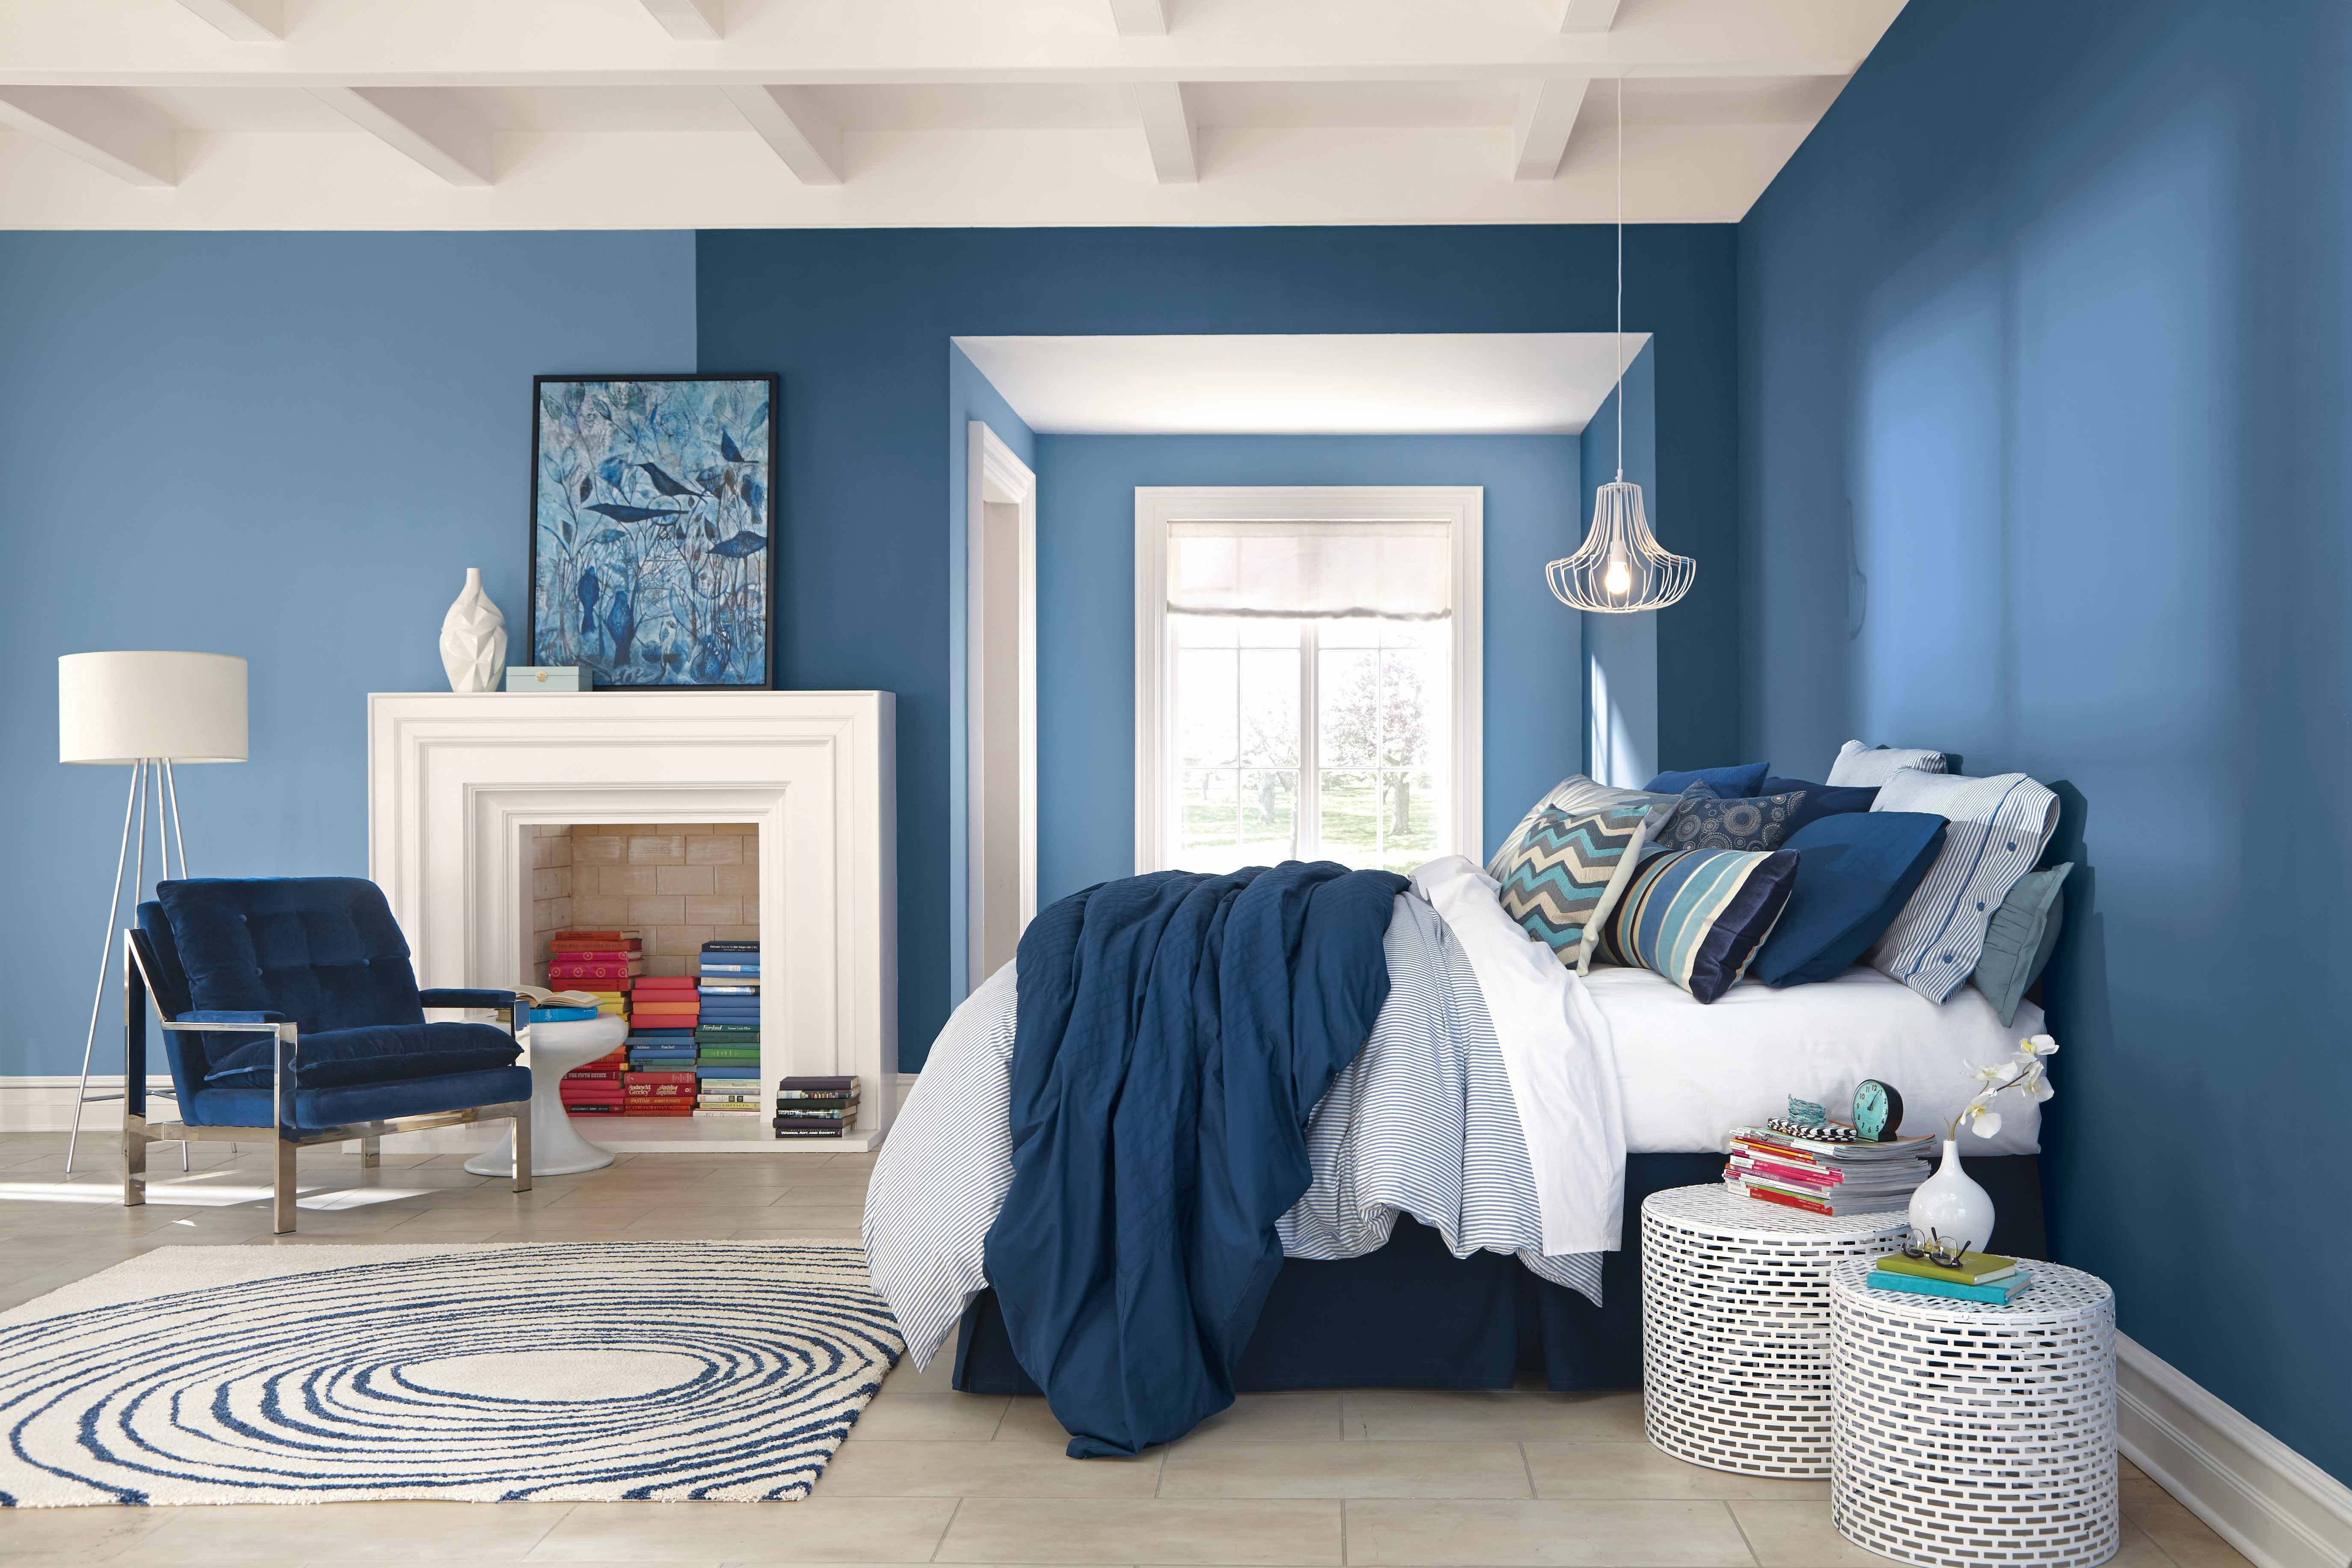 Trulia & 7 Ways to Make a Bold Palette Work in a Small Space - Trulia\u0027s Blog ...